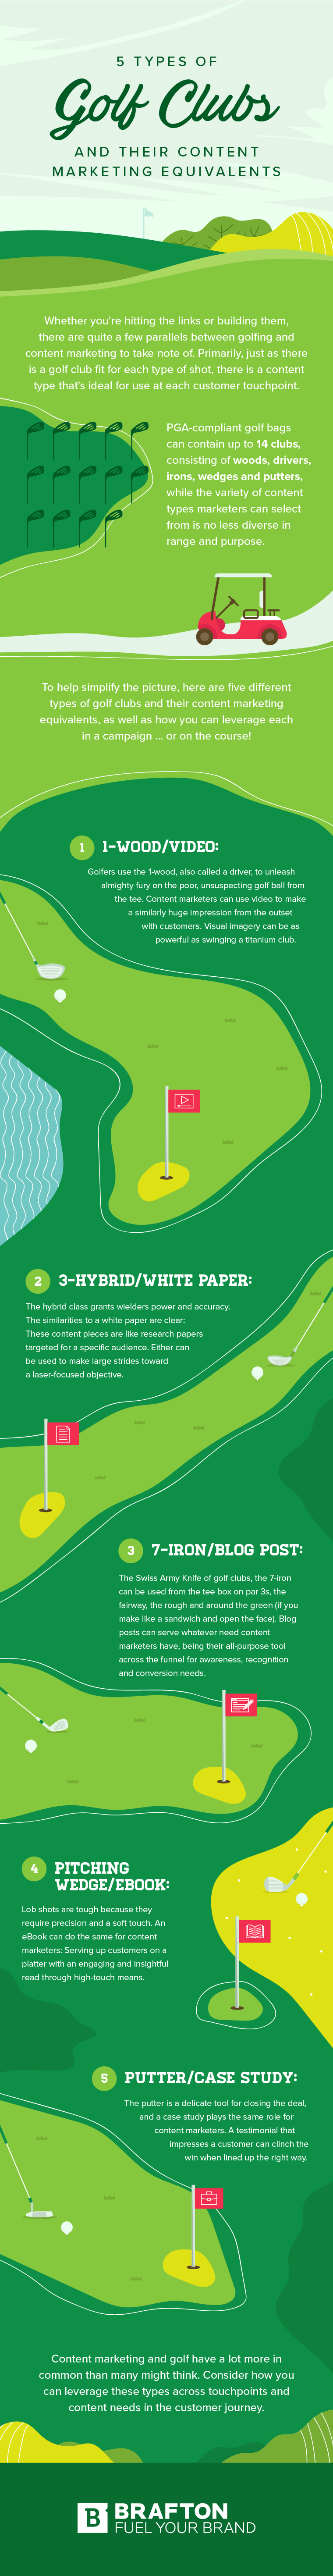 5 Types Of Golf Clubs And Their Content Marketing